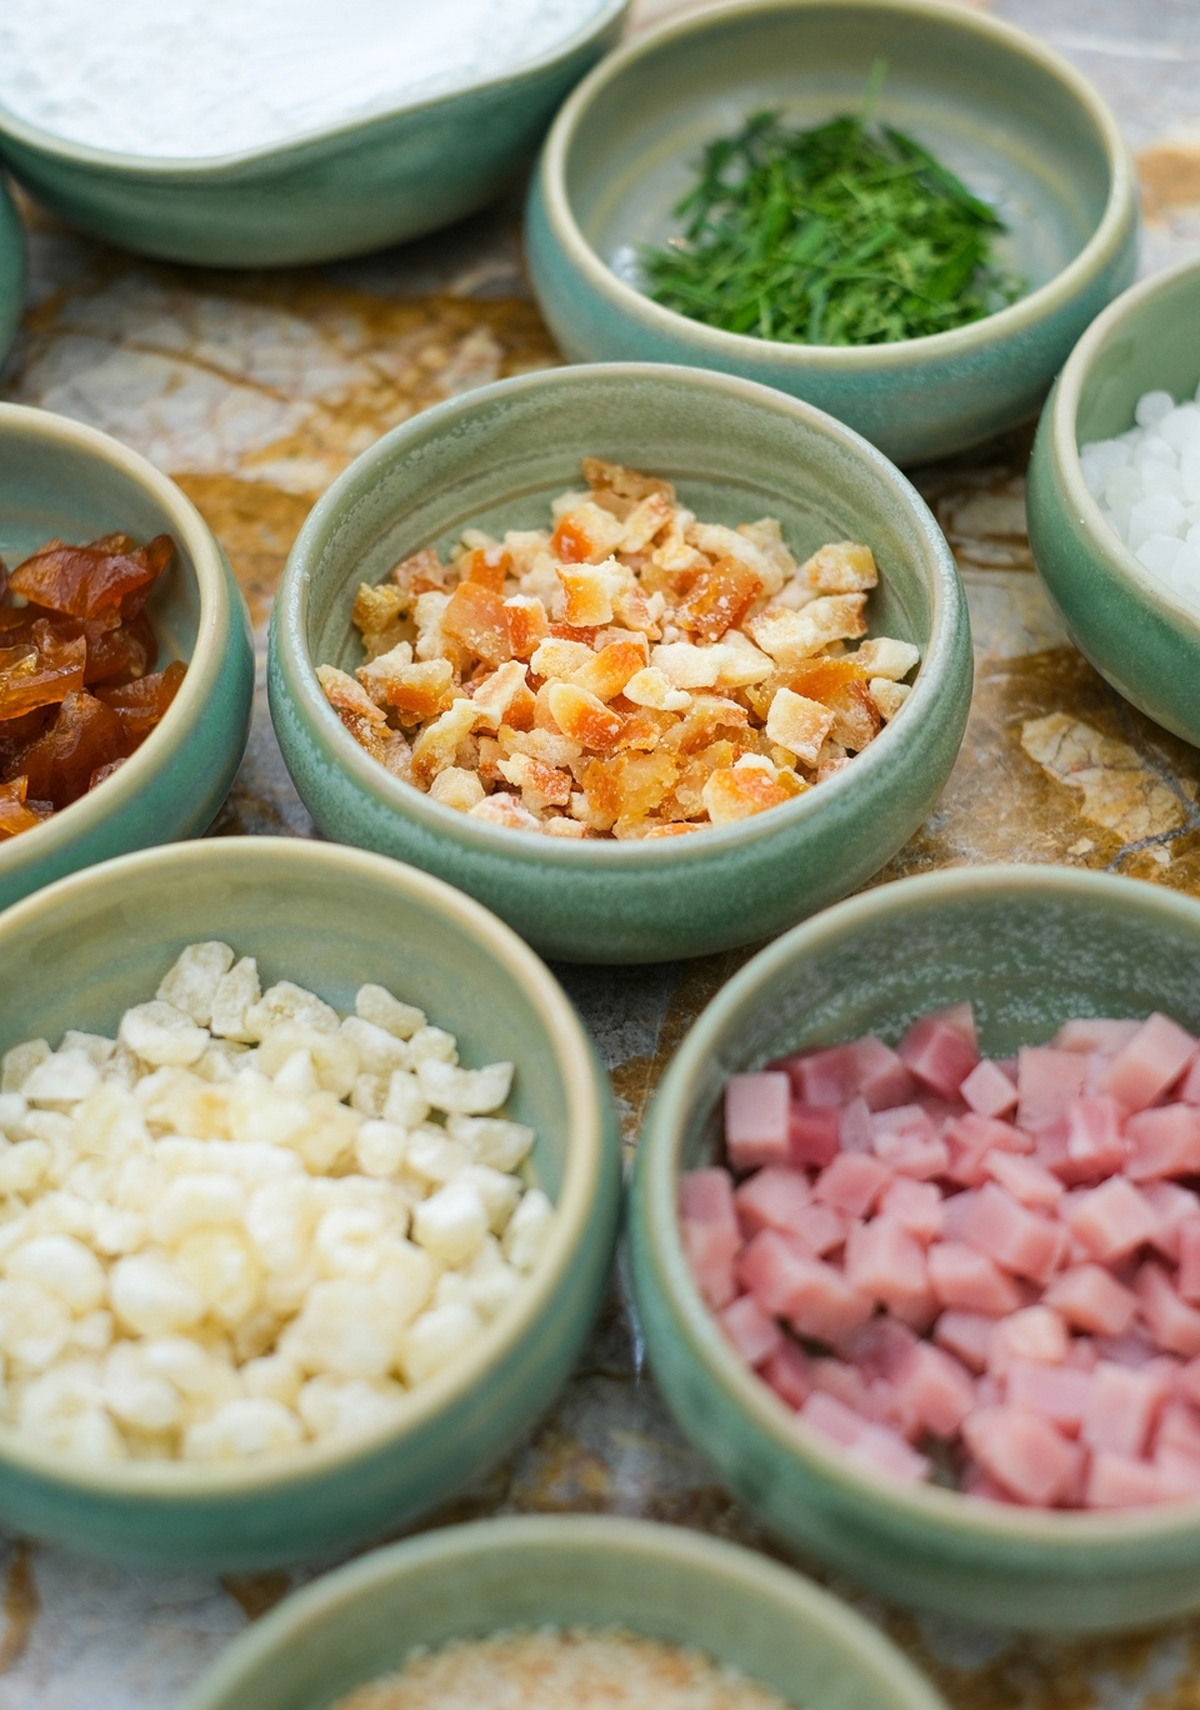 Traditional fillings remain popular, such as mixed, green beans, lotus seeds, green tea, taro, and salted eggs.